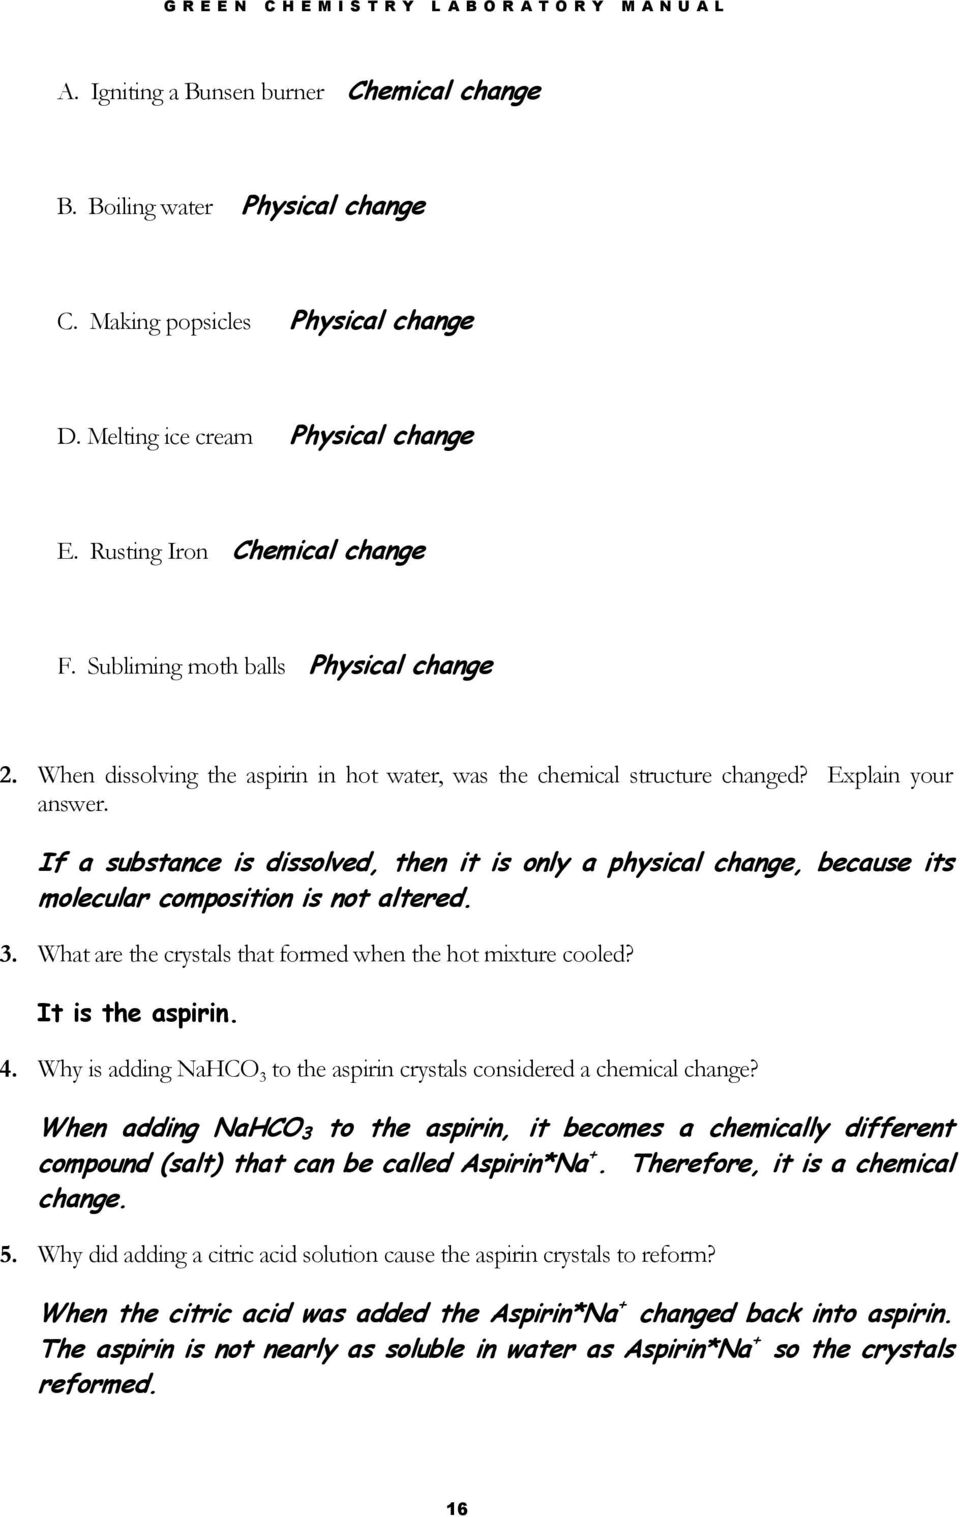 Explain your answer. If a substance is dissolved, then it is only a physical change, because its molecular composition is not altered. 3. What are the crystals that formed when the hot mixture cooled?